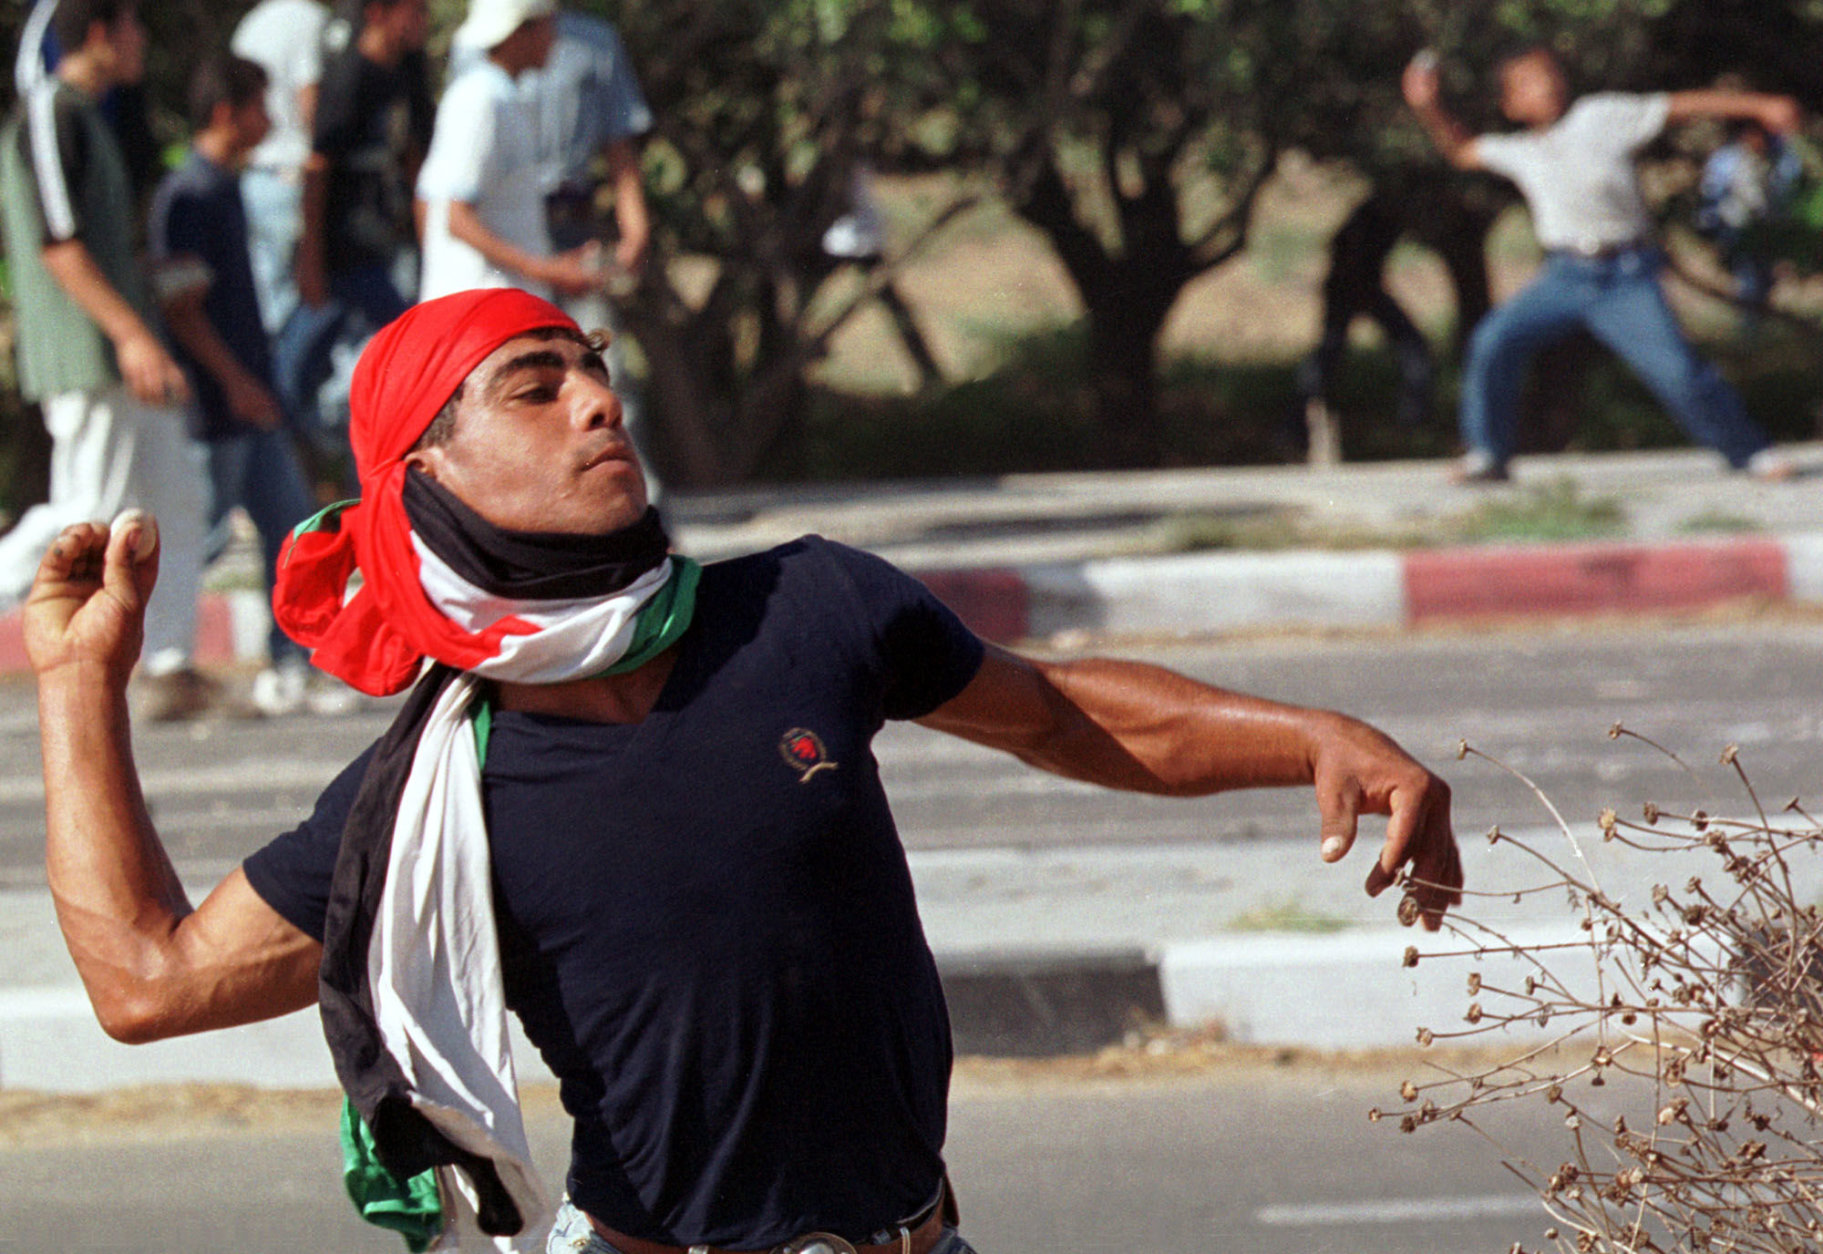 A man with the Palestinian flag wrapped around his head, throws stones during clashes between Paletinians and Israeli soldiers at the entrance of Israeli Netzarim Jewish settlement crossing, in the southern Gaza City, Saturday, Sept. 30, 2000.  Palestinian youths stoned Israelis a day after Israel riot police stormed a major Muslim shrine in Jerusalem killing  six Palestinians. (AP Photo/Adel Hana)